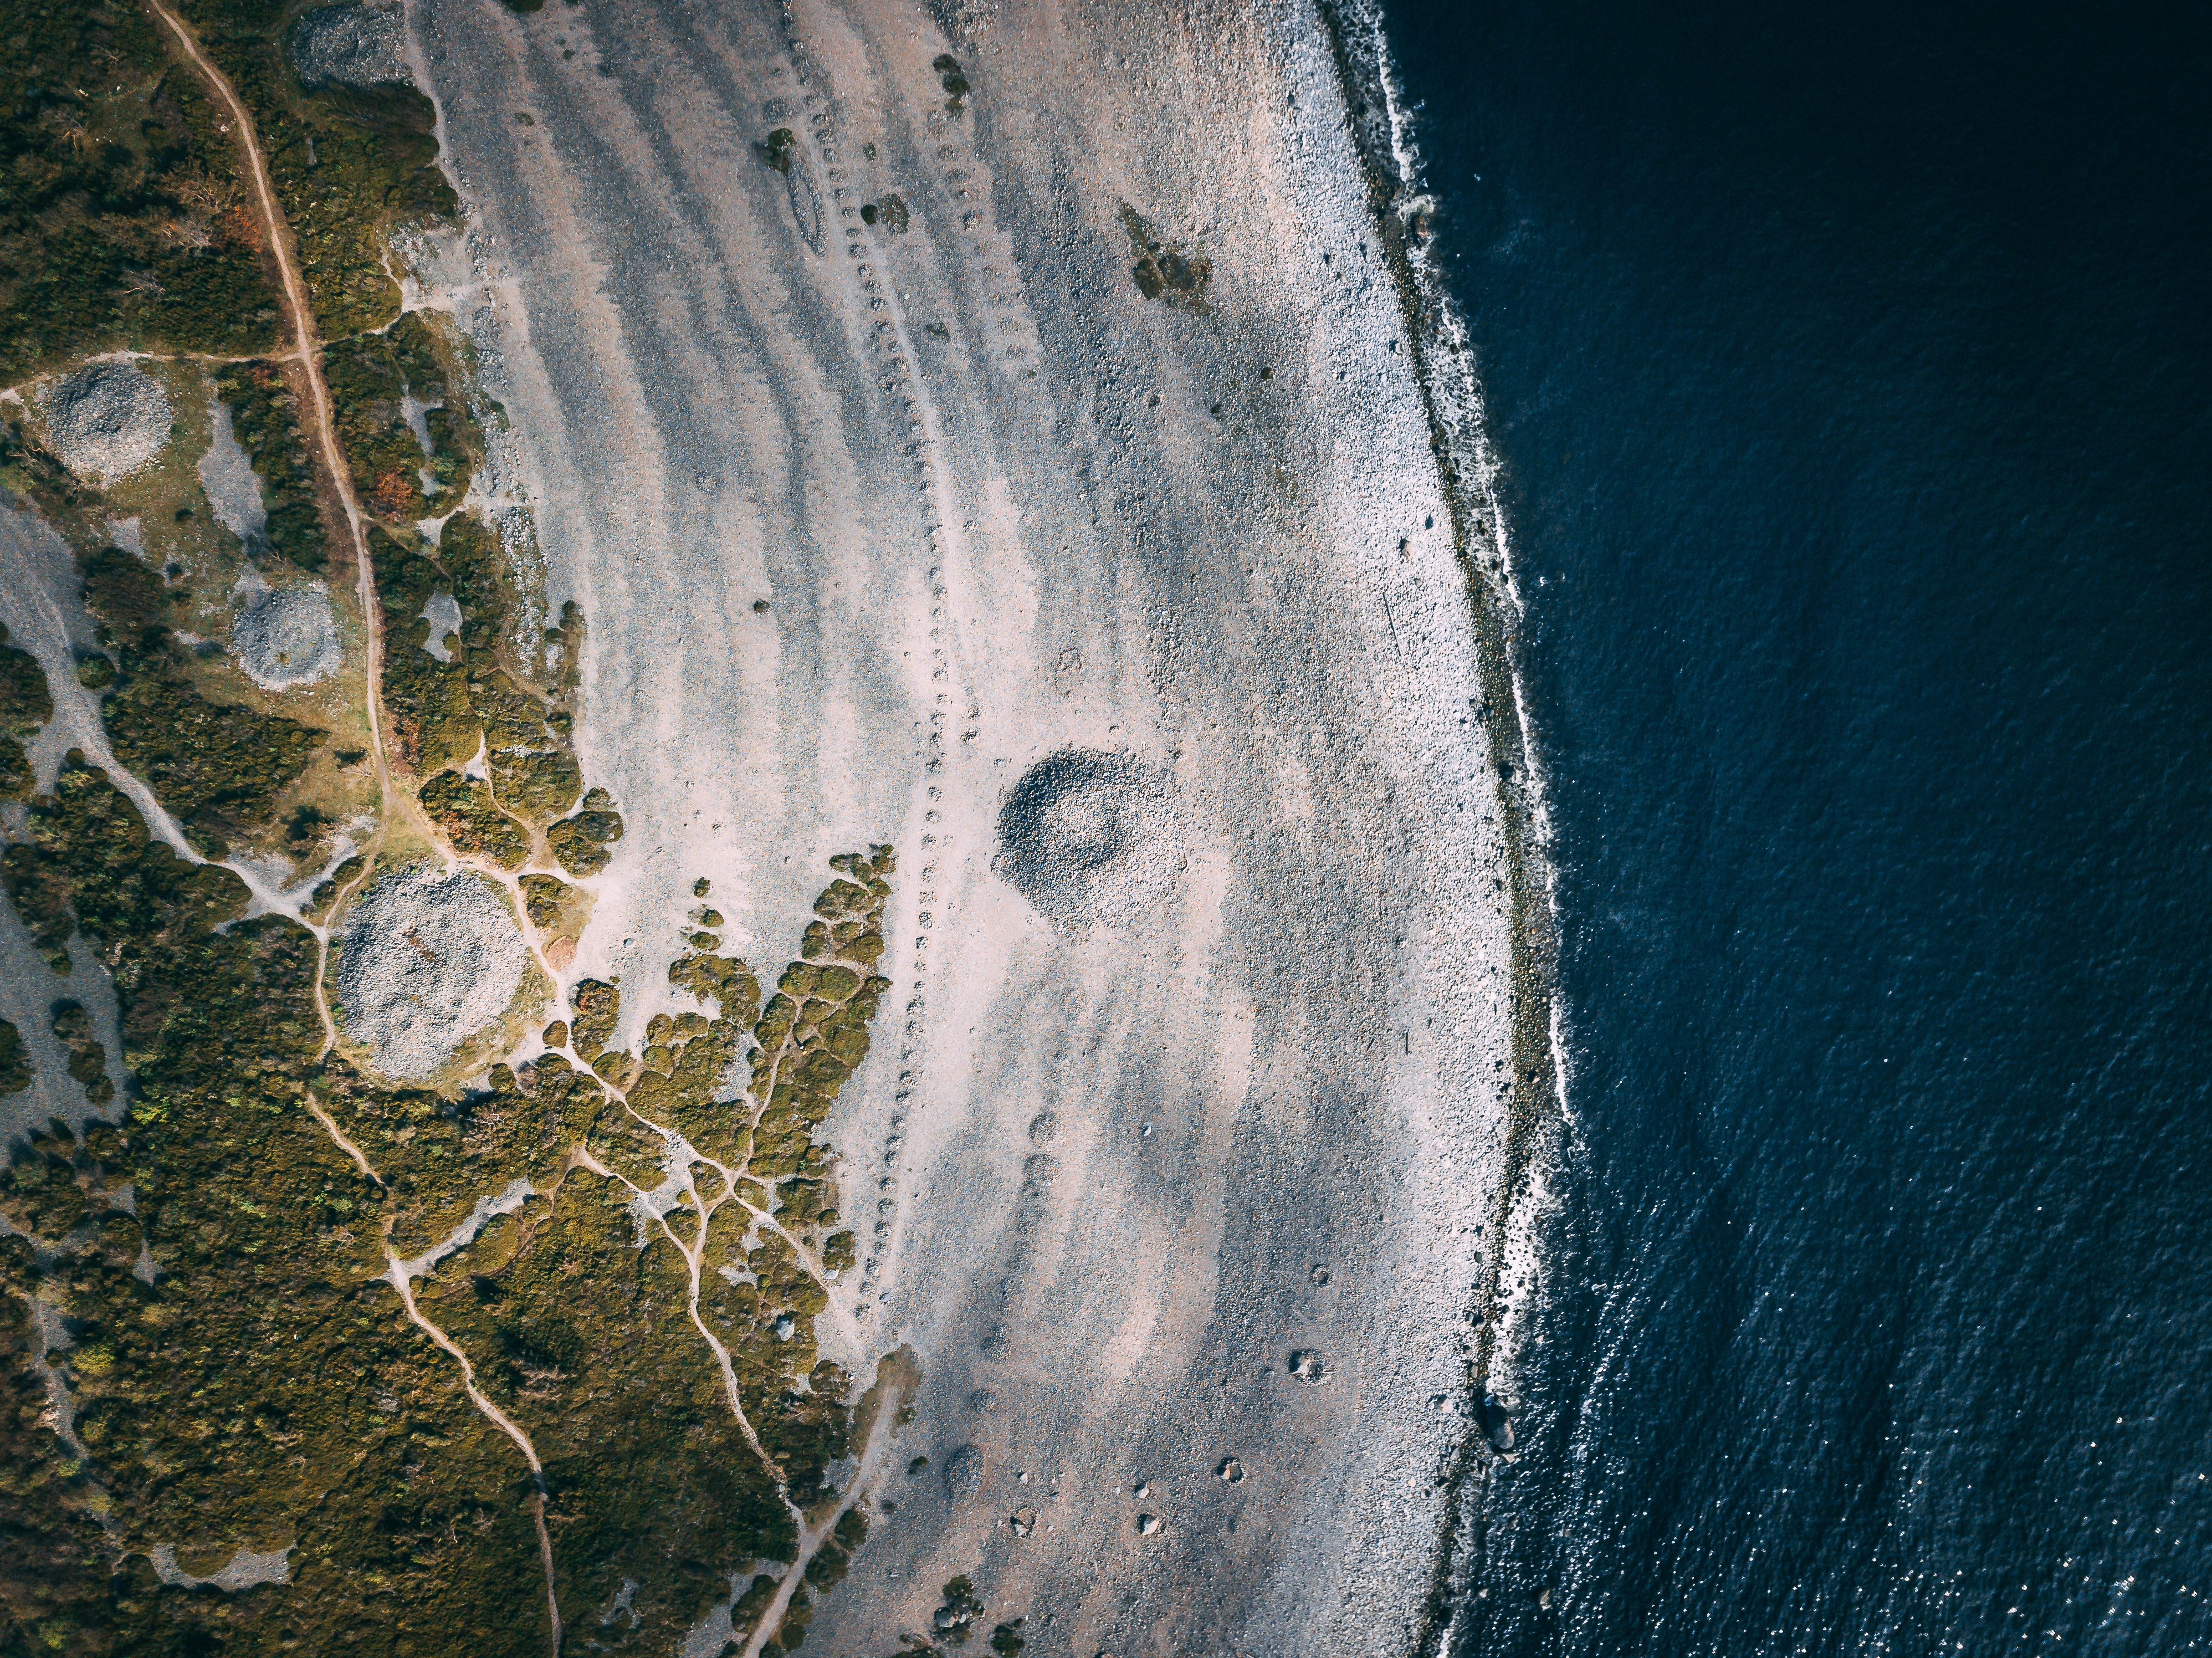 Aerial photography of an island at daytime